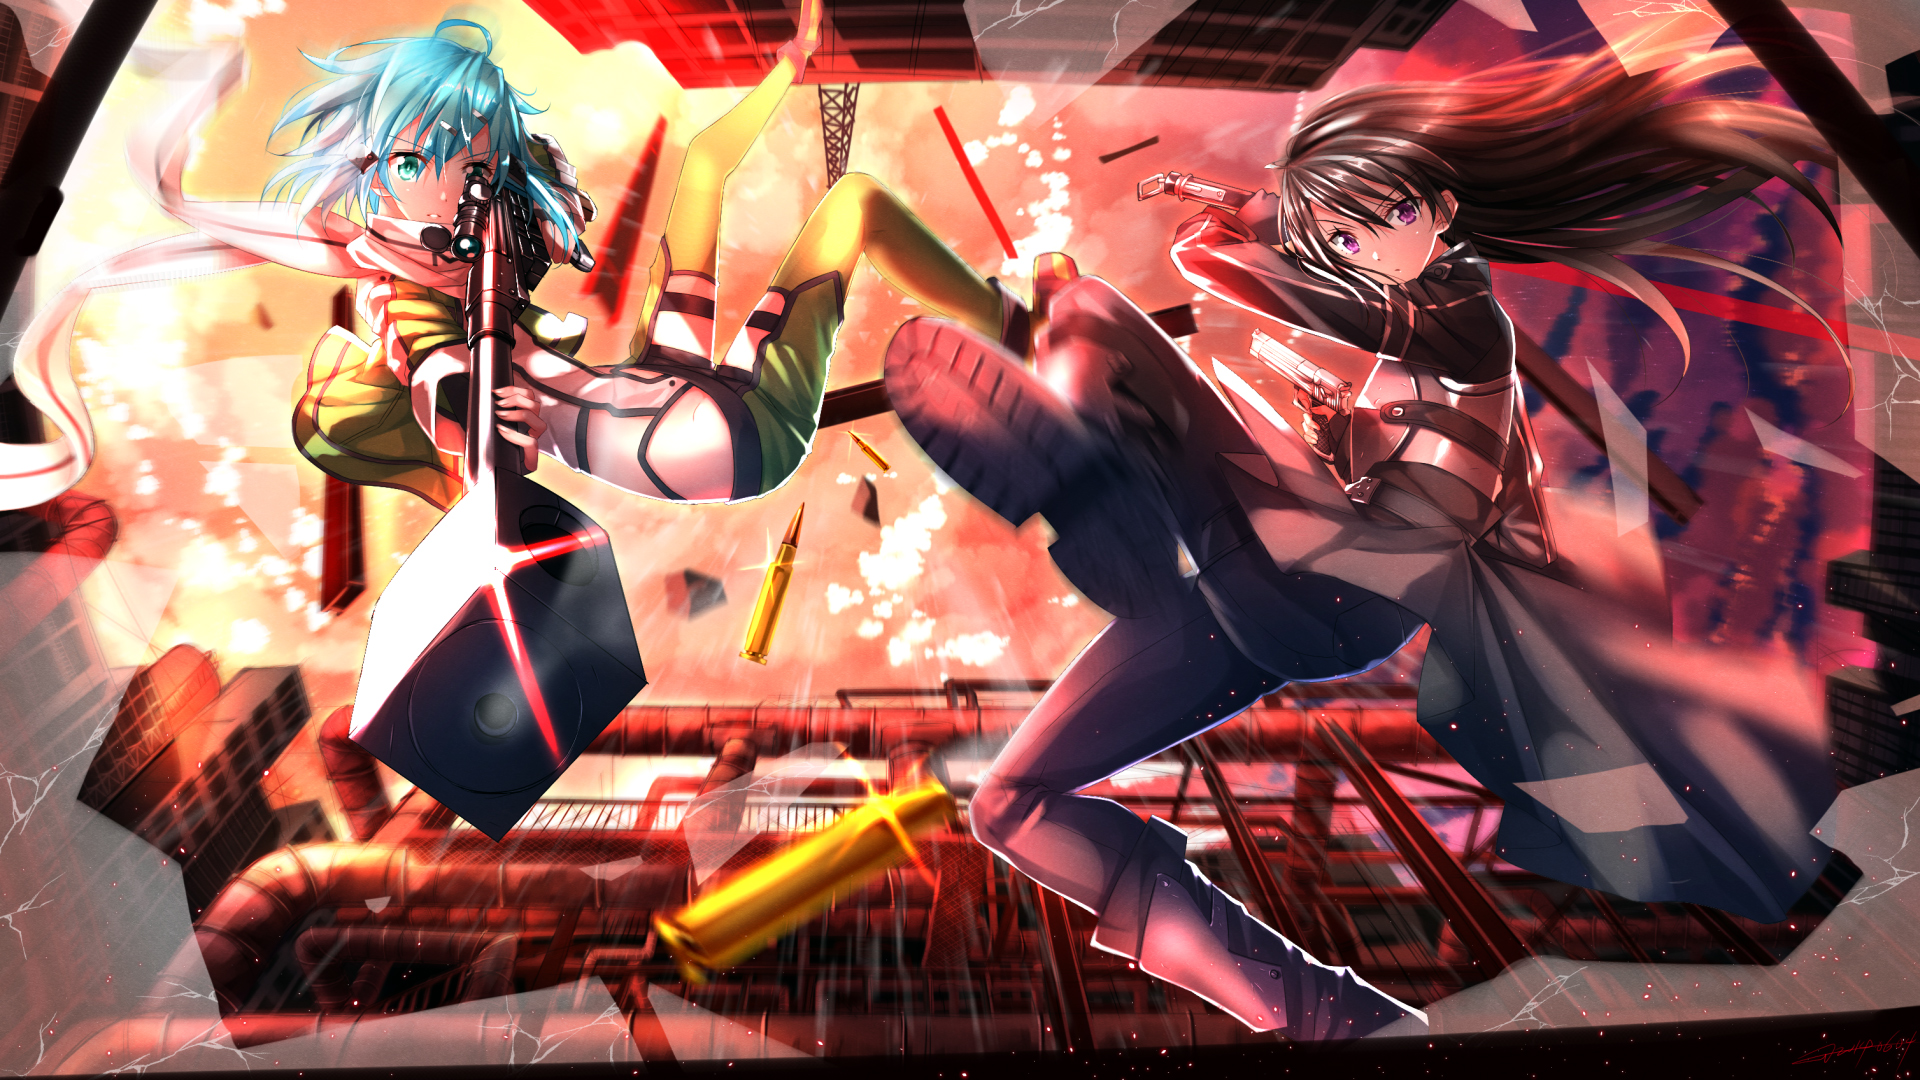 SAO 2 HD 1920x1080 1080p wallpaper and compatible for 1280x720 1920x1080